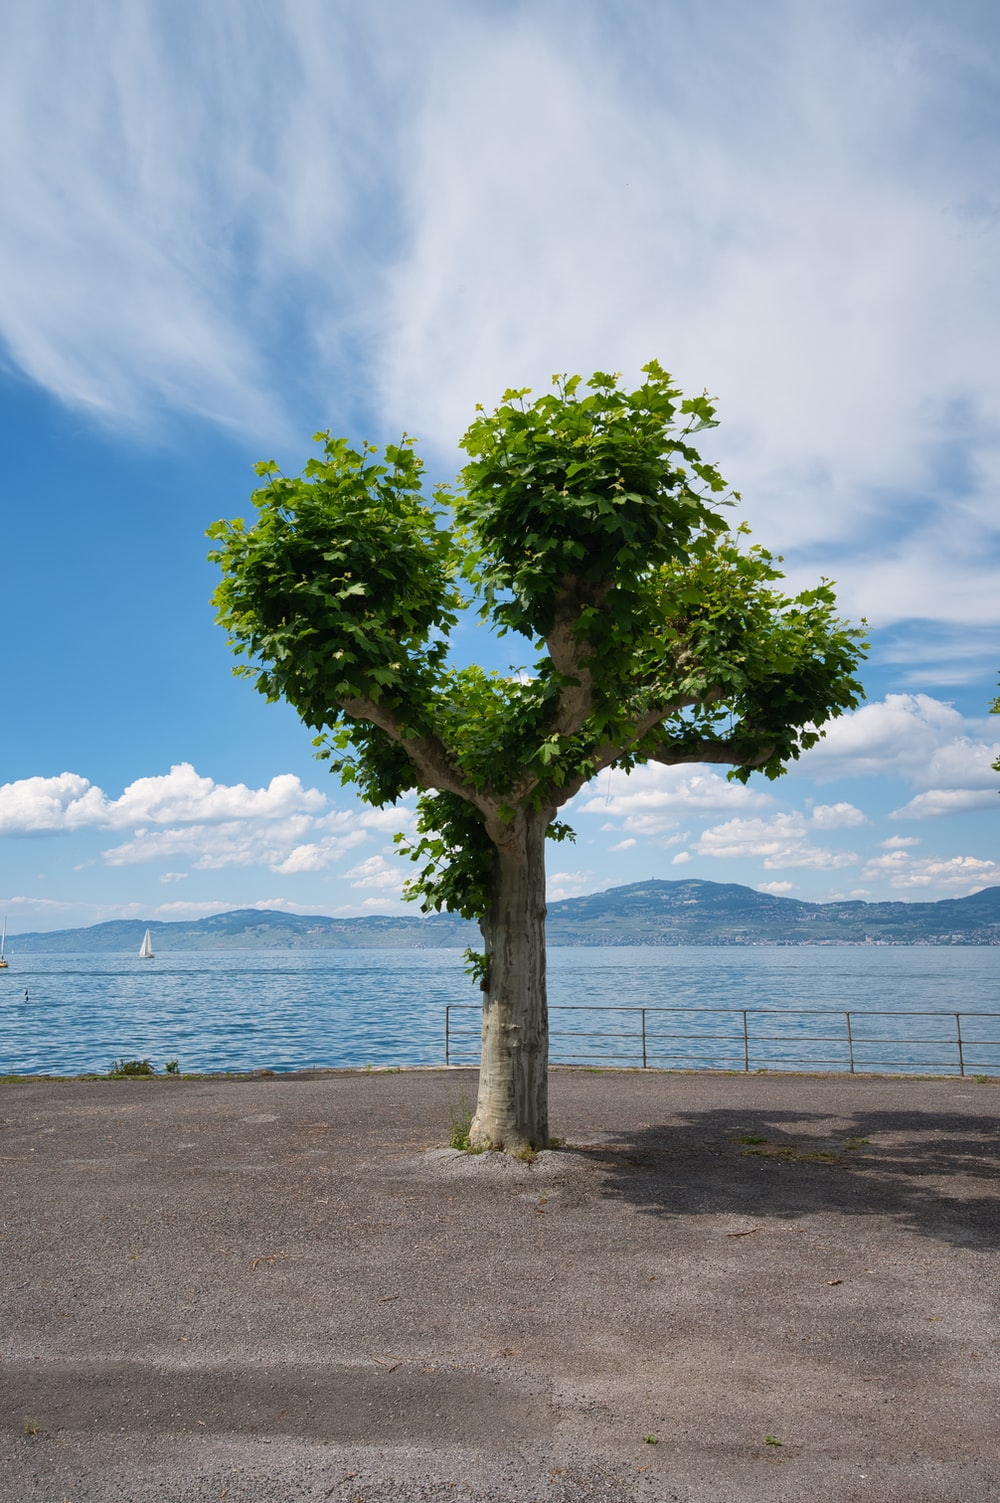 green tree near body of water during daytime